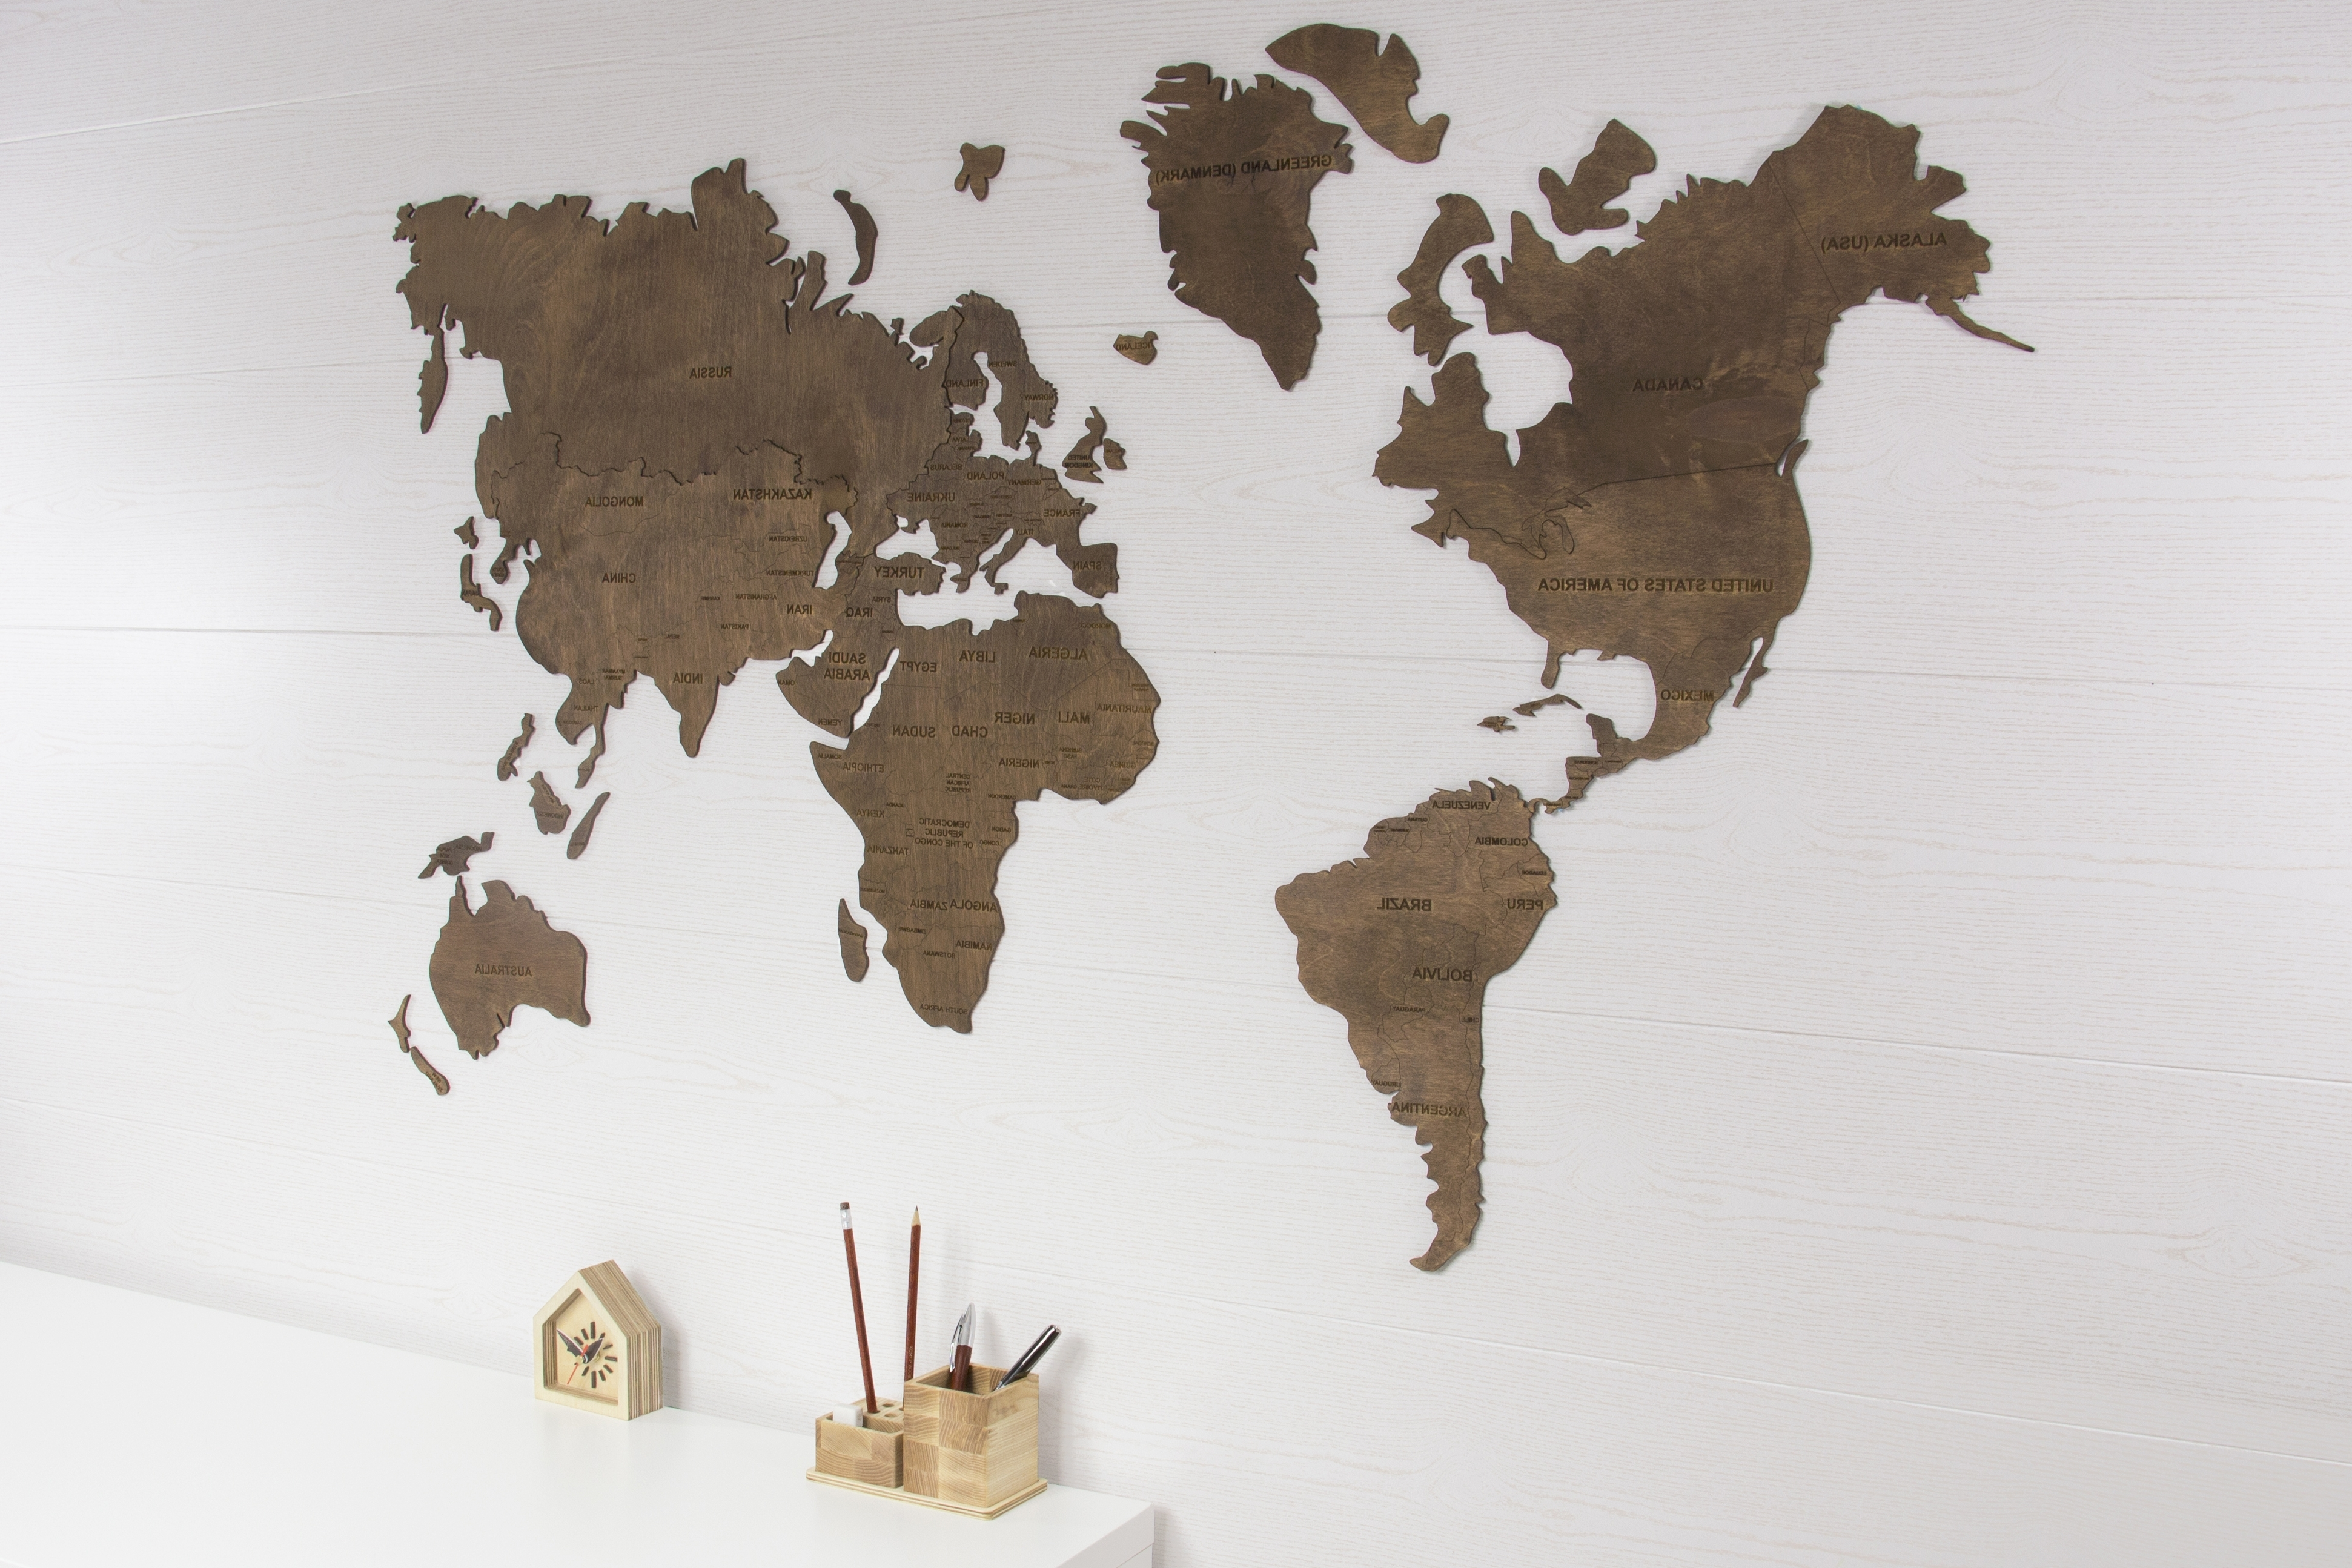 Wood Map Wall Art Throughout Famous World Map Wall, World Map Hanging, World Map Wooden, World Map Wood (View 10 of 15)